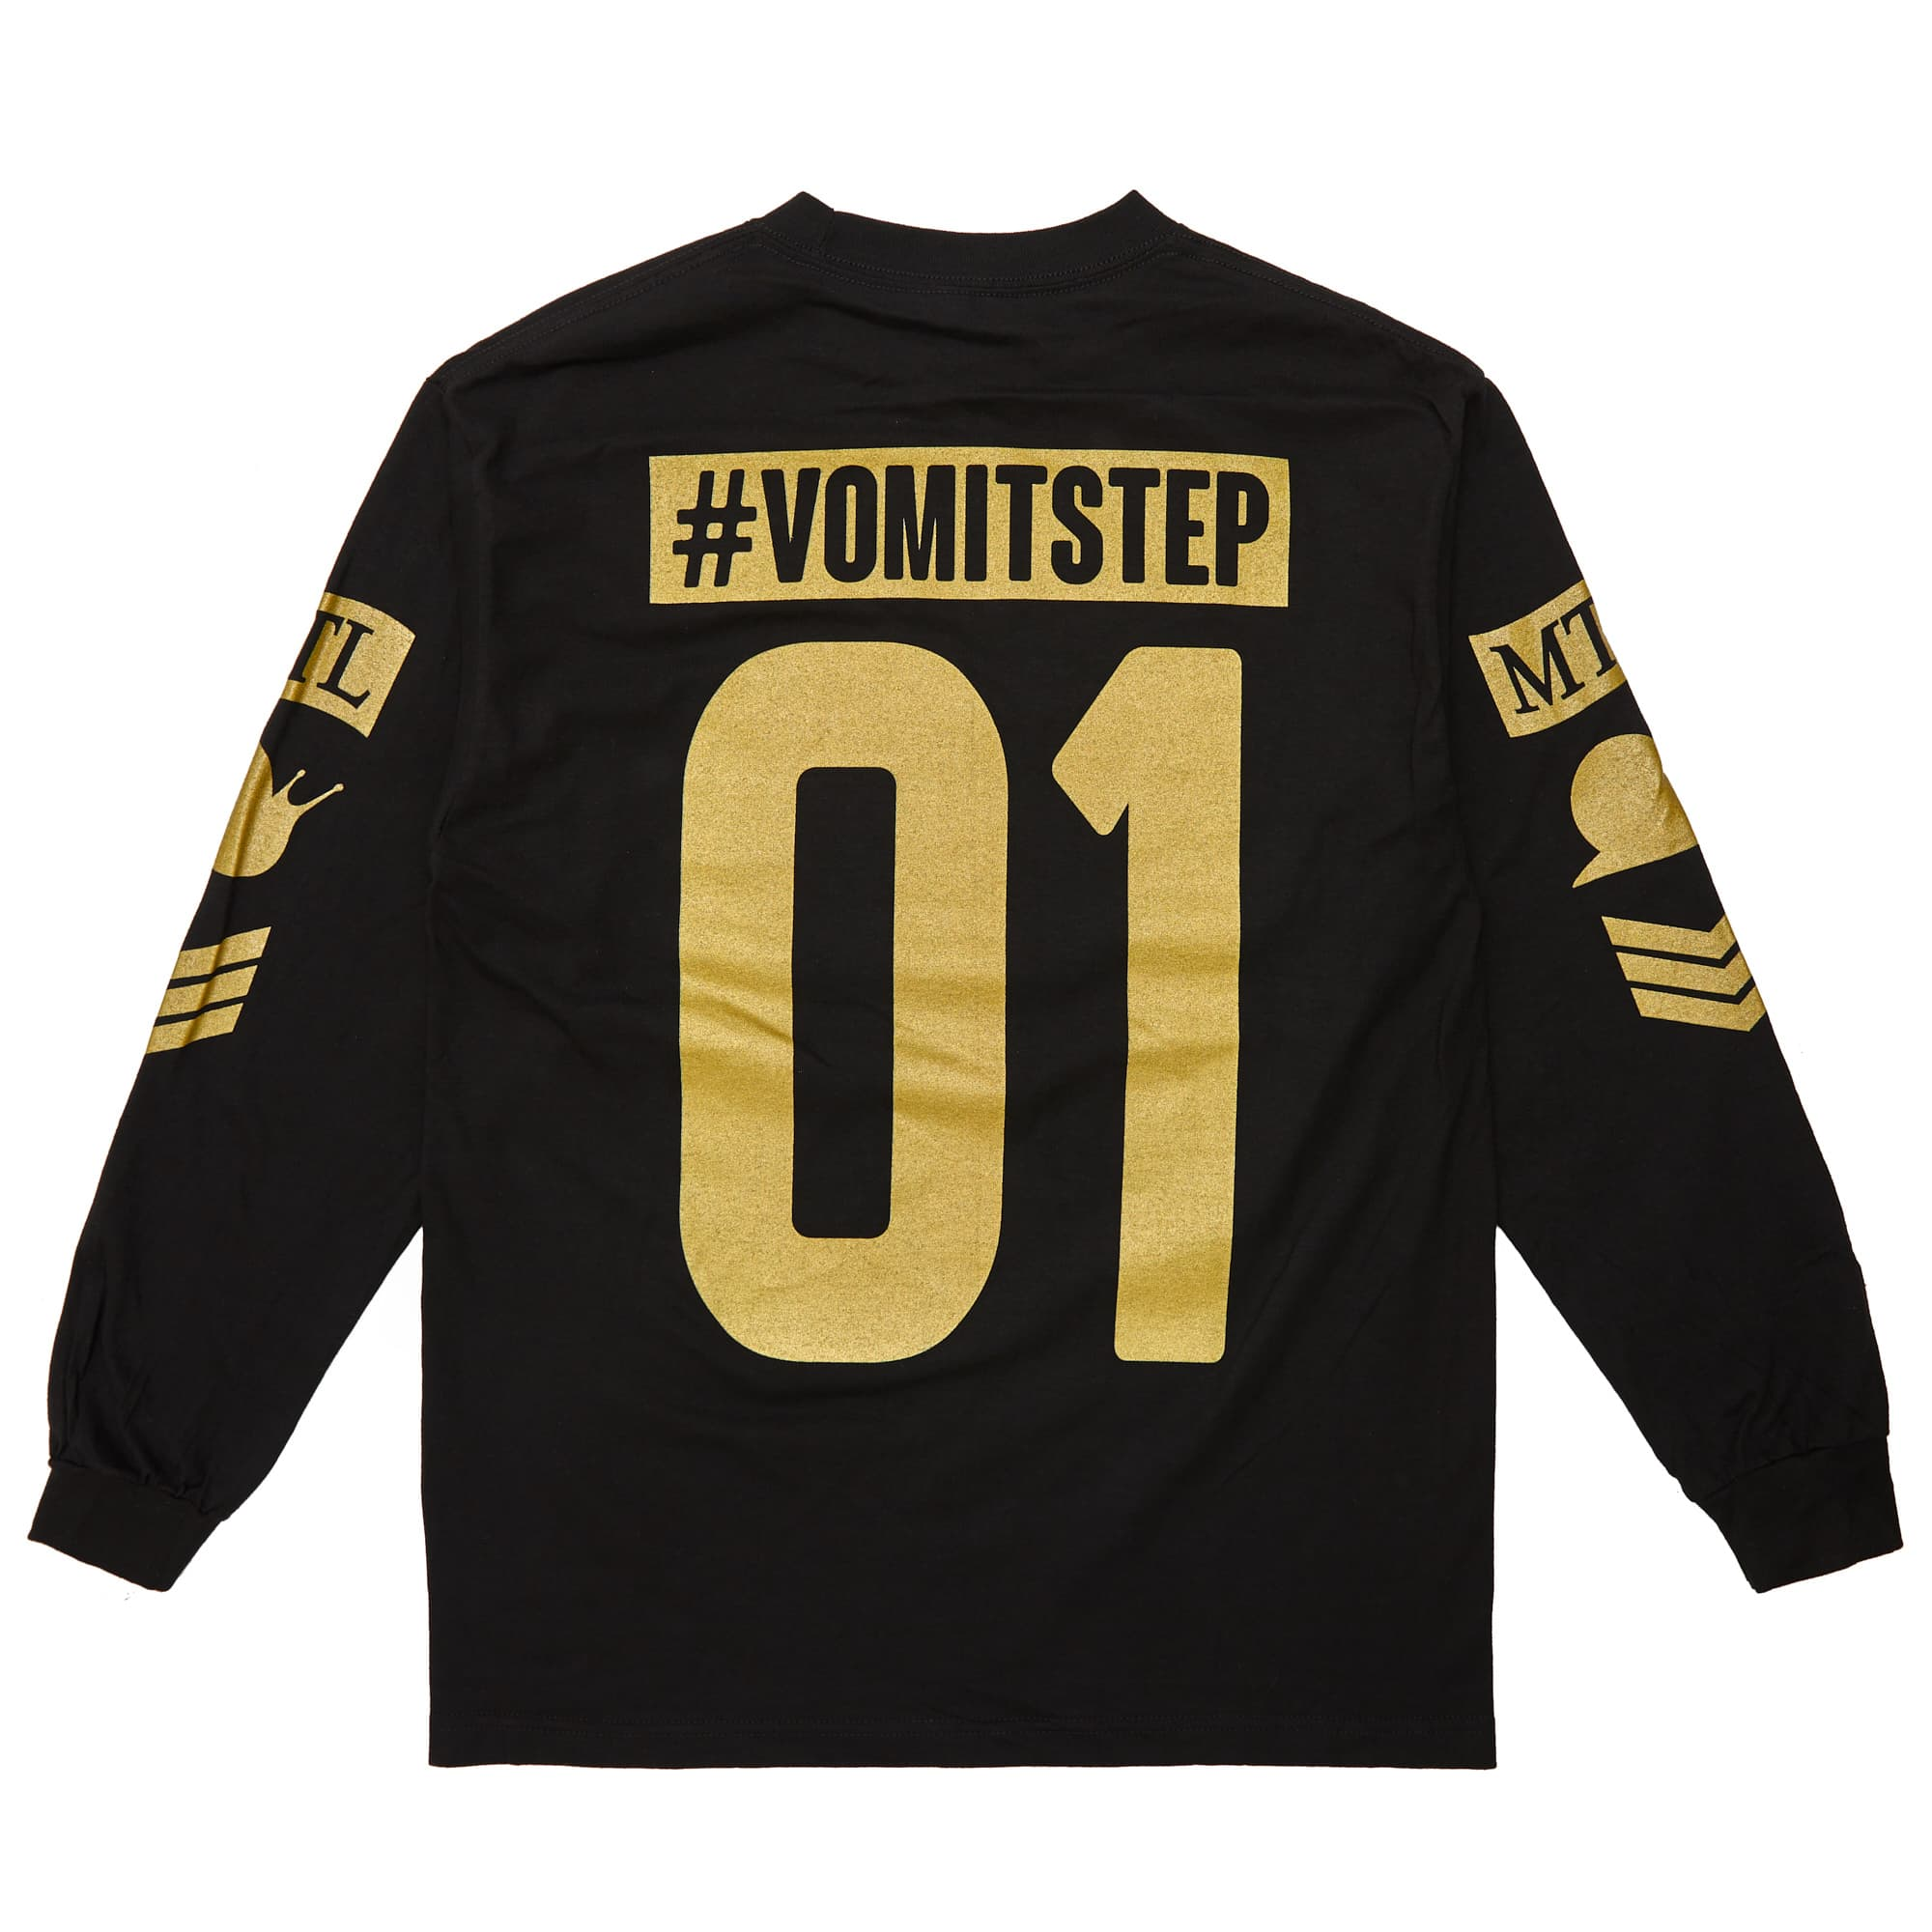 'Vomitstep' Long Sleeve Tee - Black/Gold